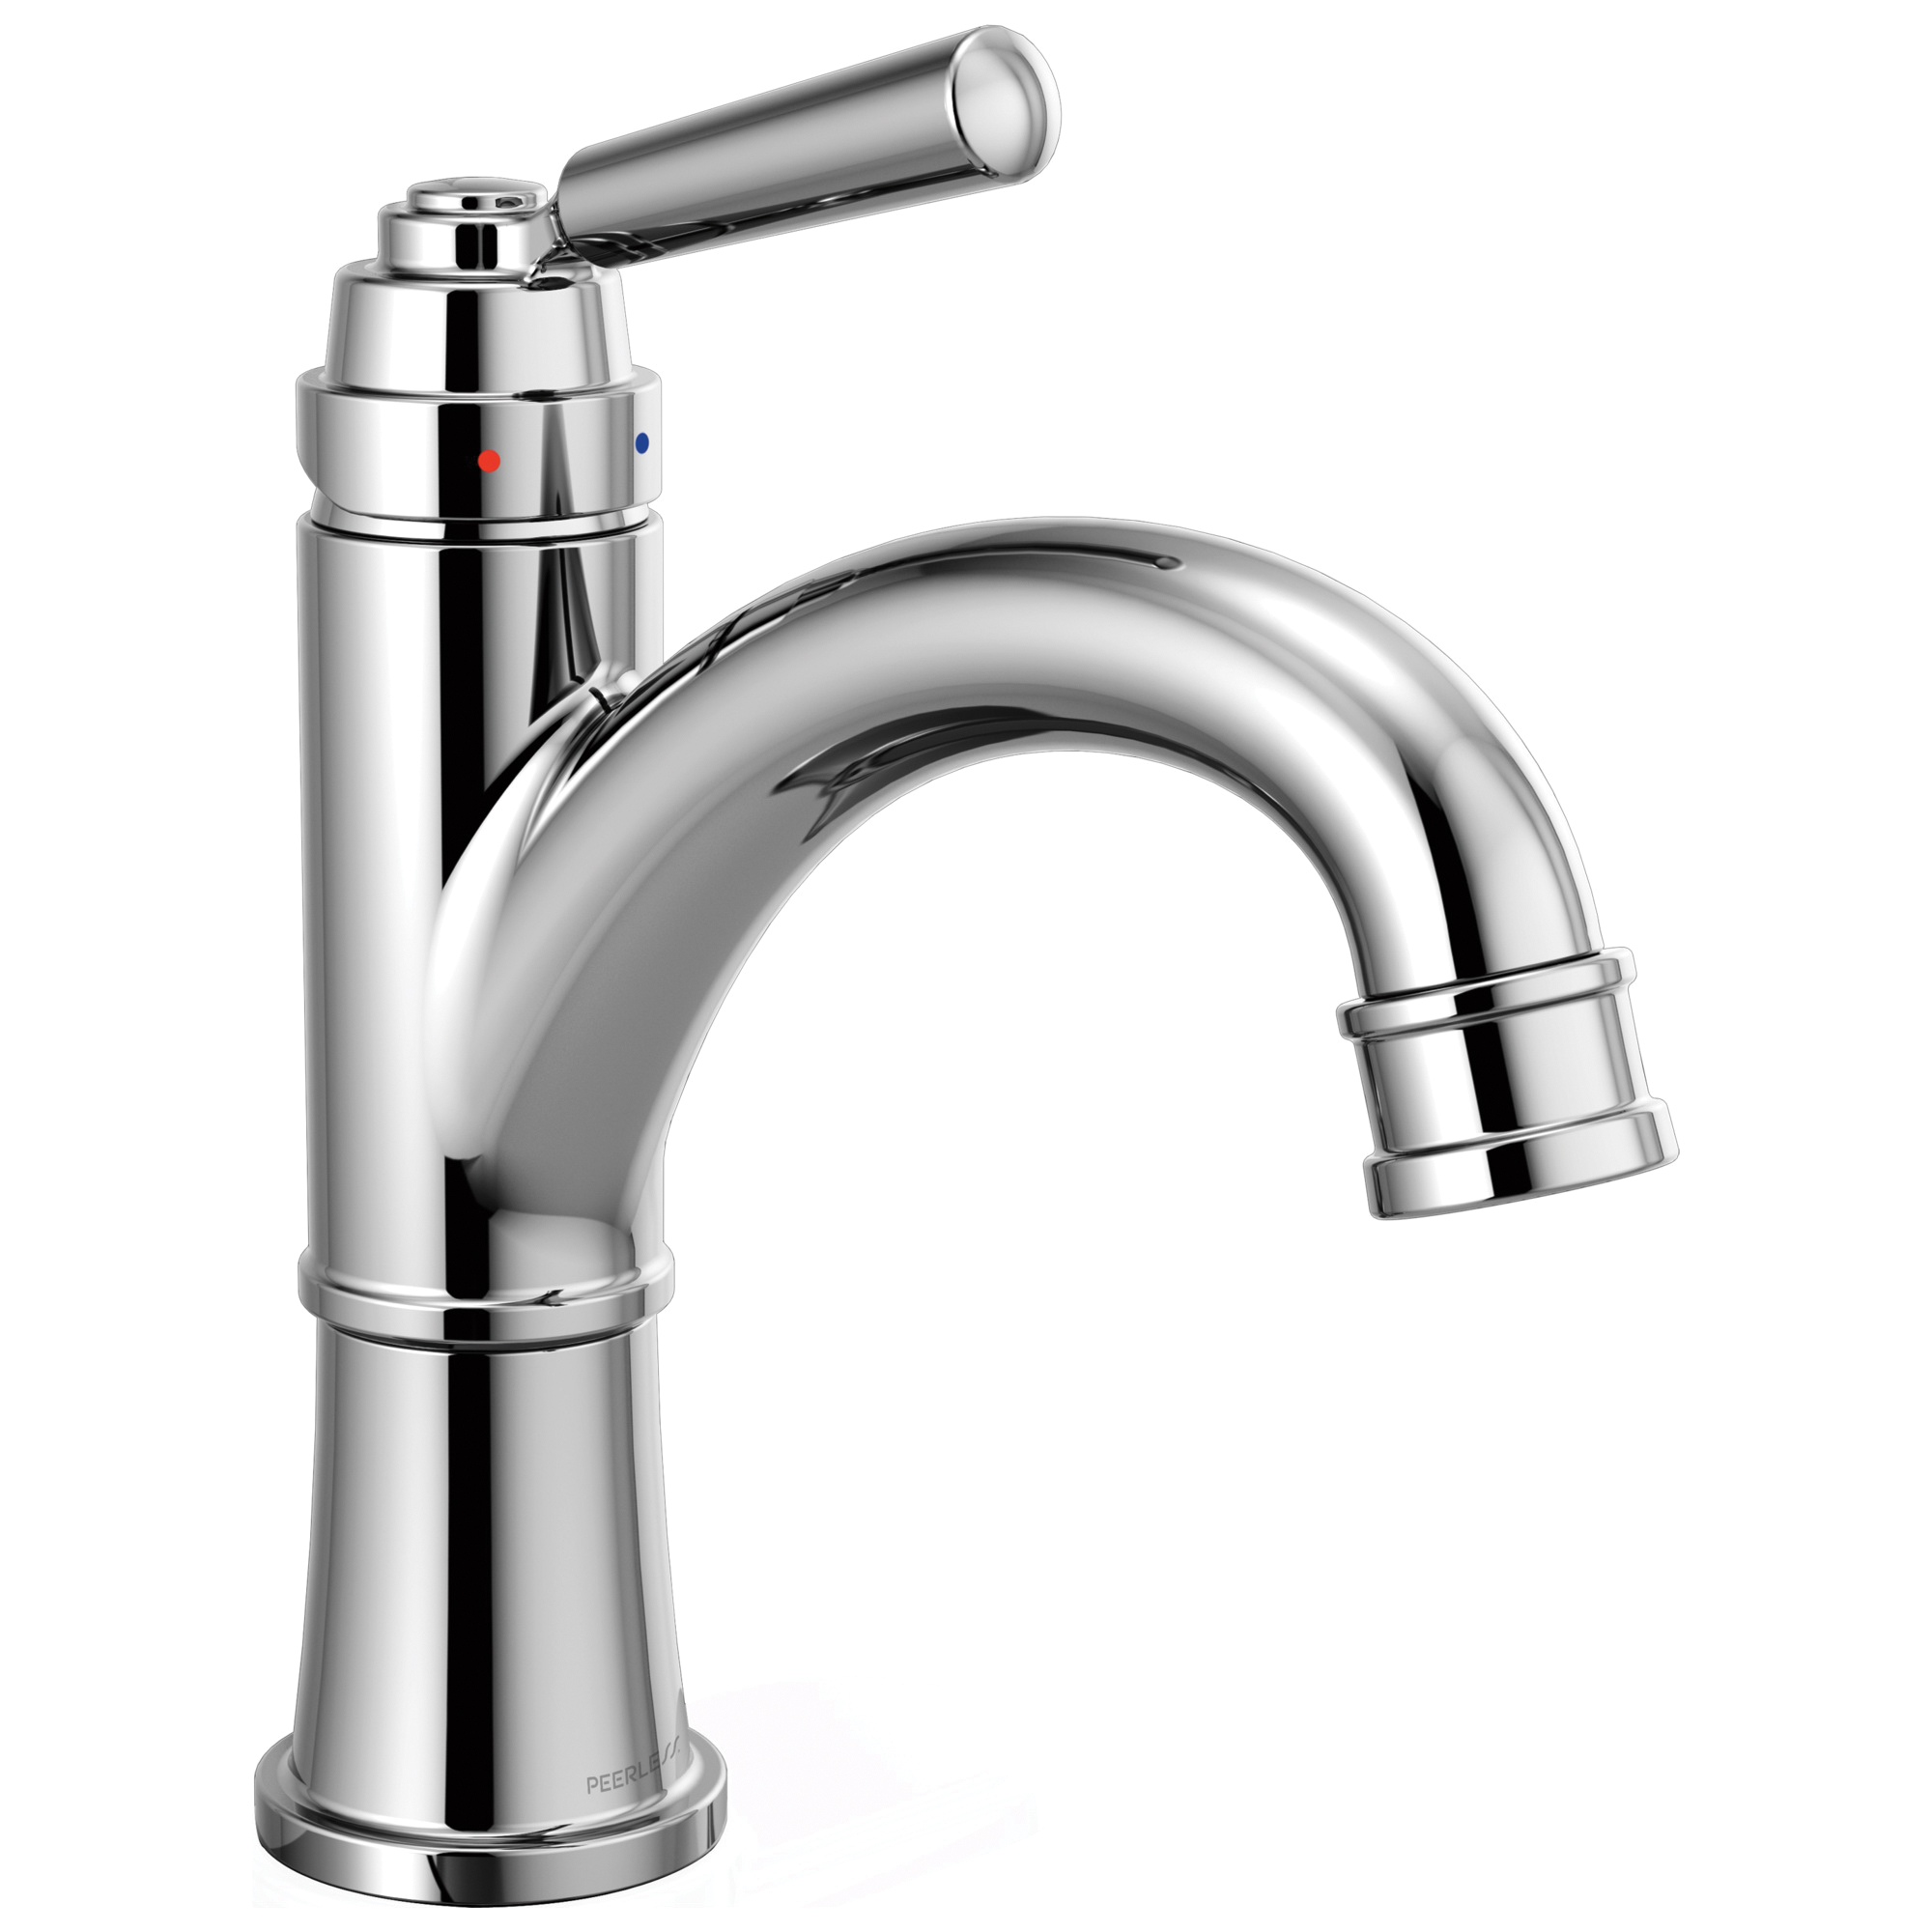 Peerless® P1523LF Bathroom Faucet, Westchester™, Chrome Plated, 1 Handles, Pop-Up Drain, 1 gpm